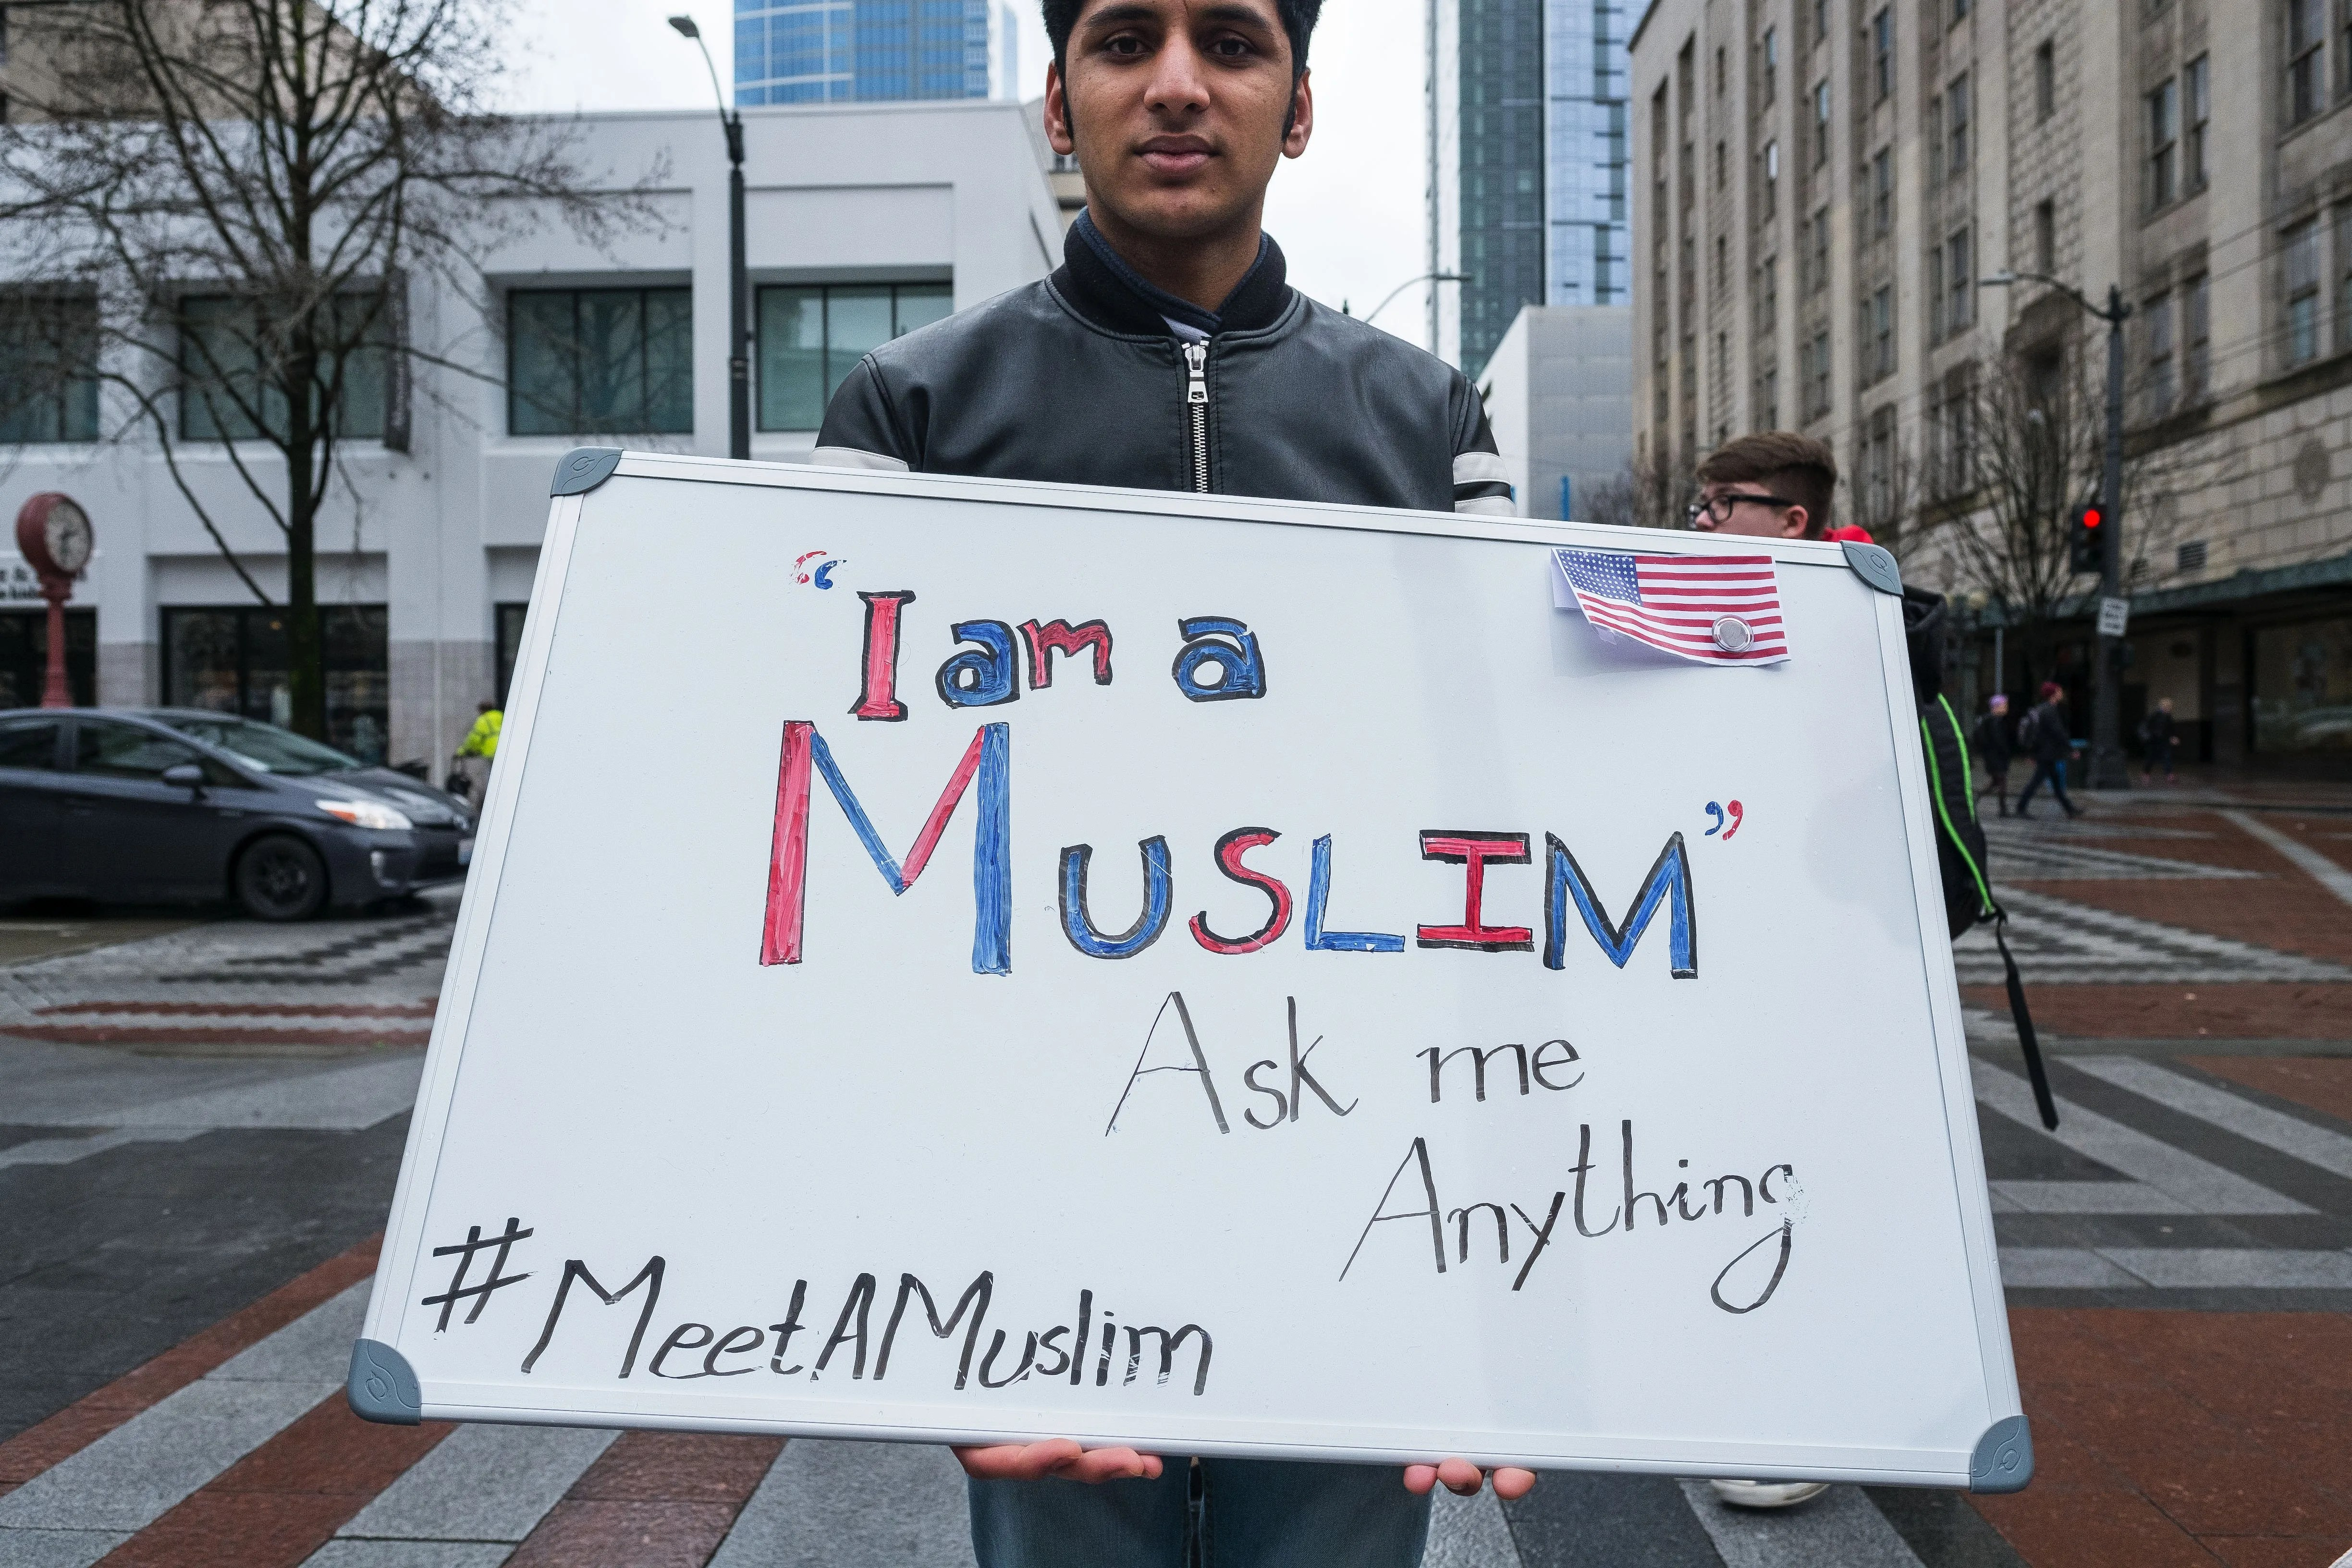 Faiez Ahmad joins two of his friends in Westlake Park. About 30 or 40 people stopped by to speak to them, including people attending a St. Patrick's Day Parade. Young Muslims also fielded questions at Green Lake the University District and Pike Place Market. (Dean Rutz/The Seattle Times)